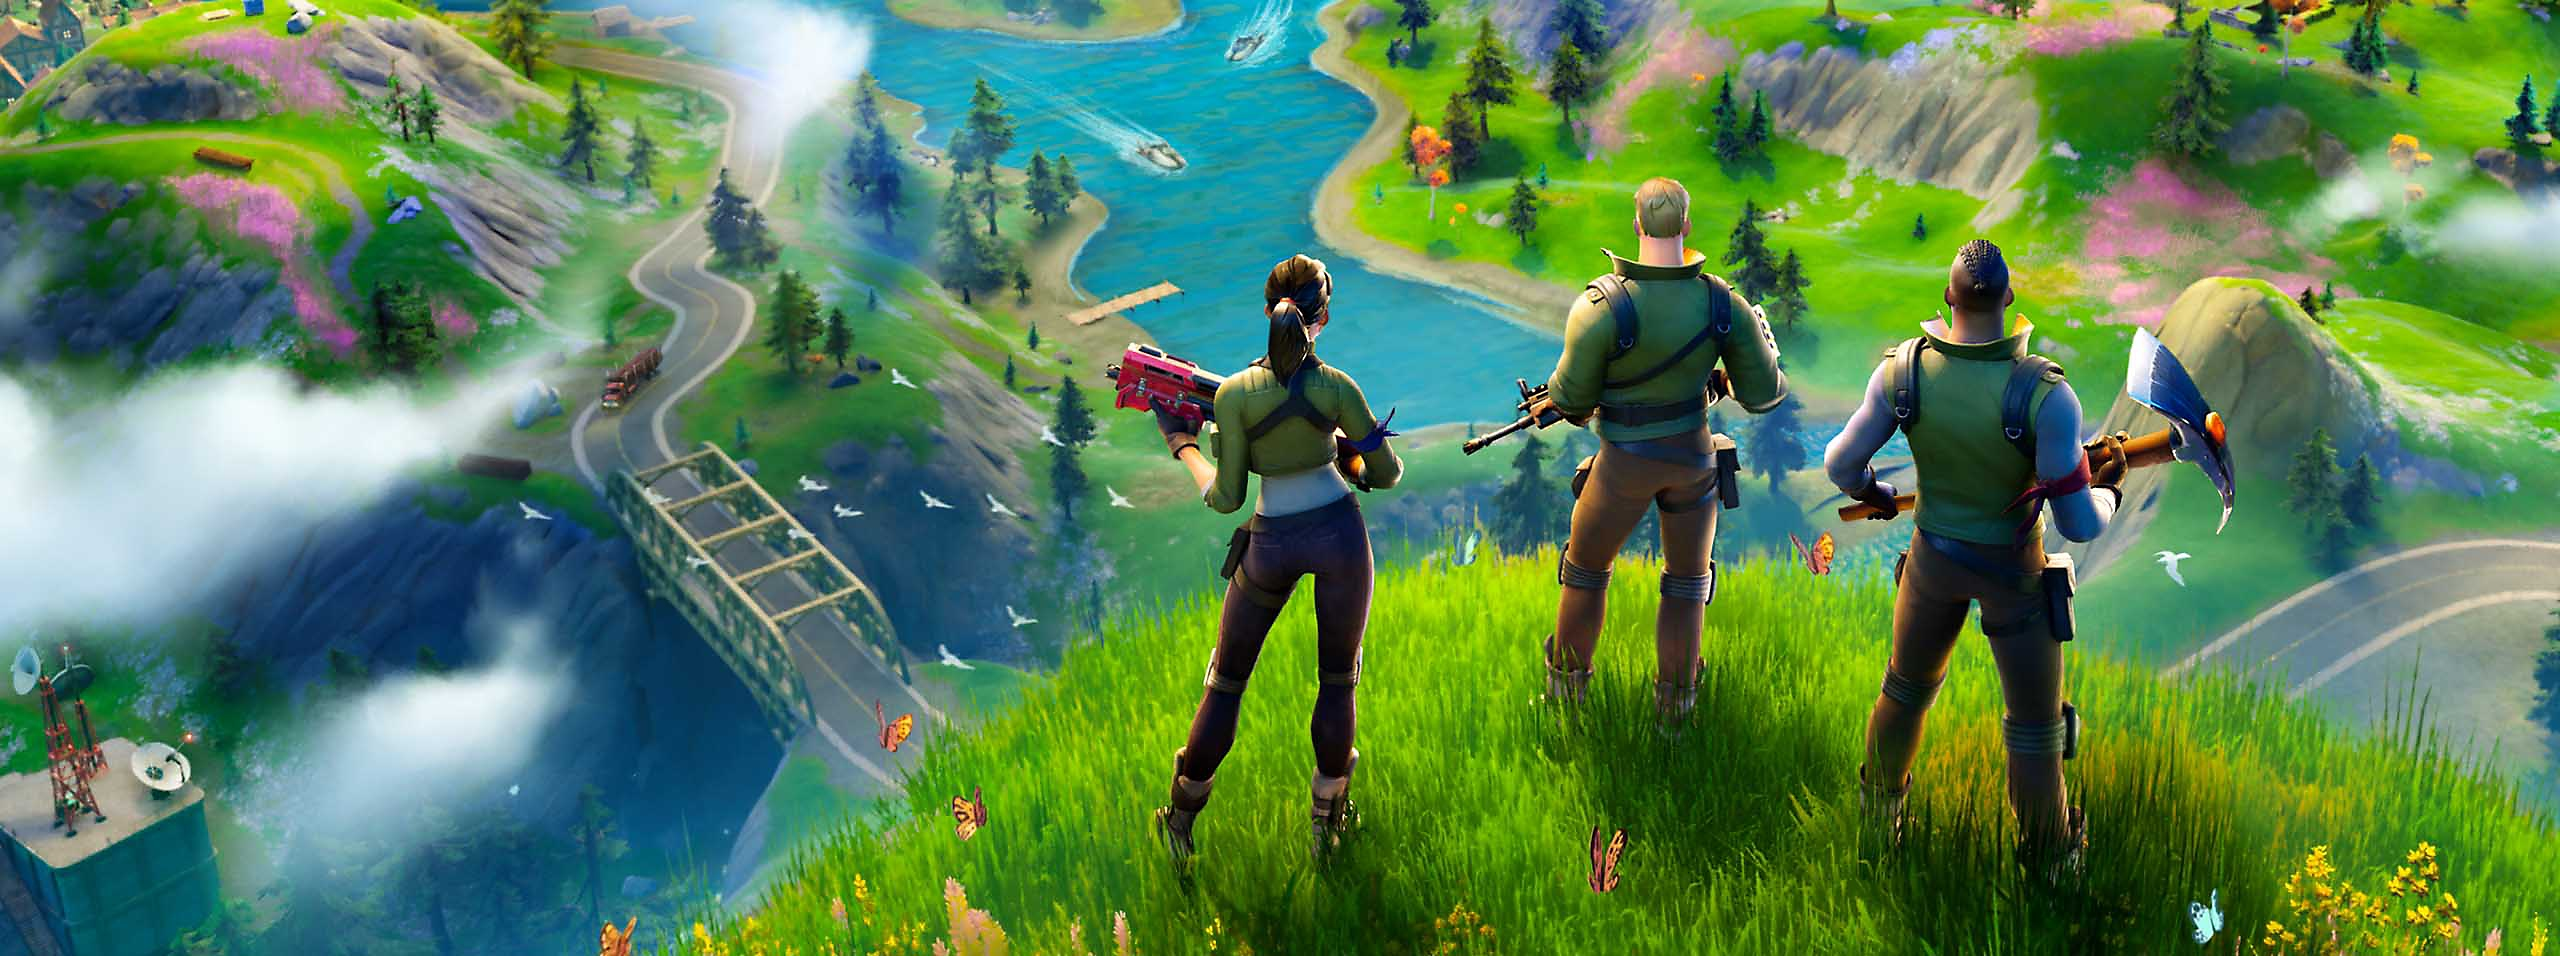 Fortnite — Chapter 2 Key Art